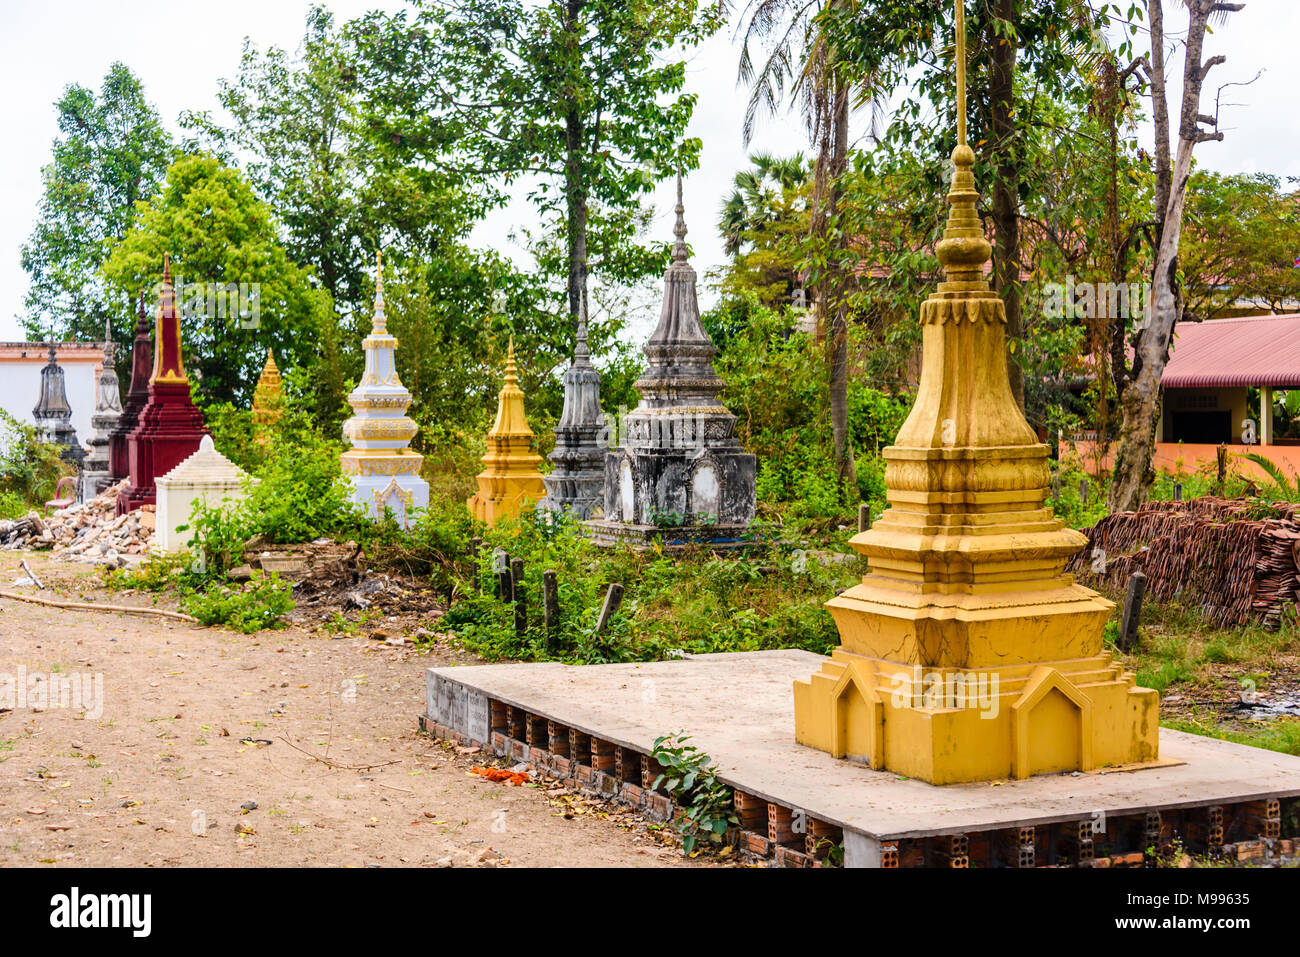 Stupa, traditional Buddhist burial gravestones at a temple in a rural area of Cambodia Stock Photo